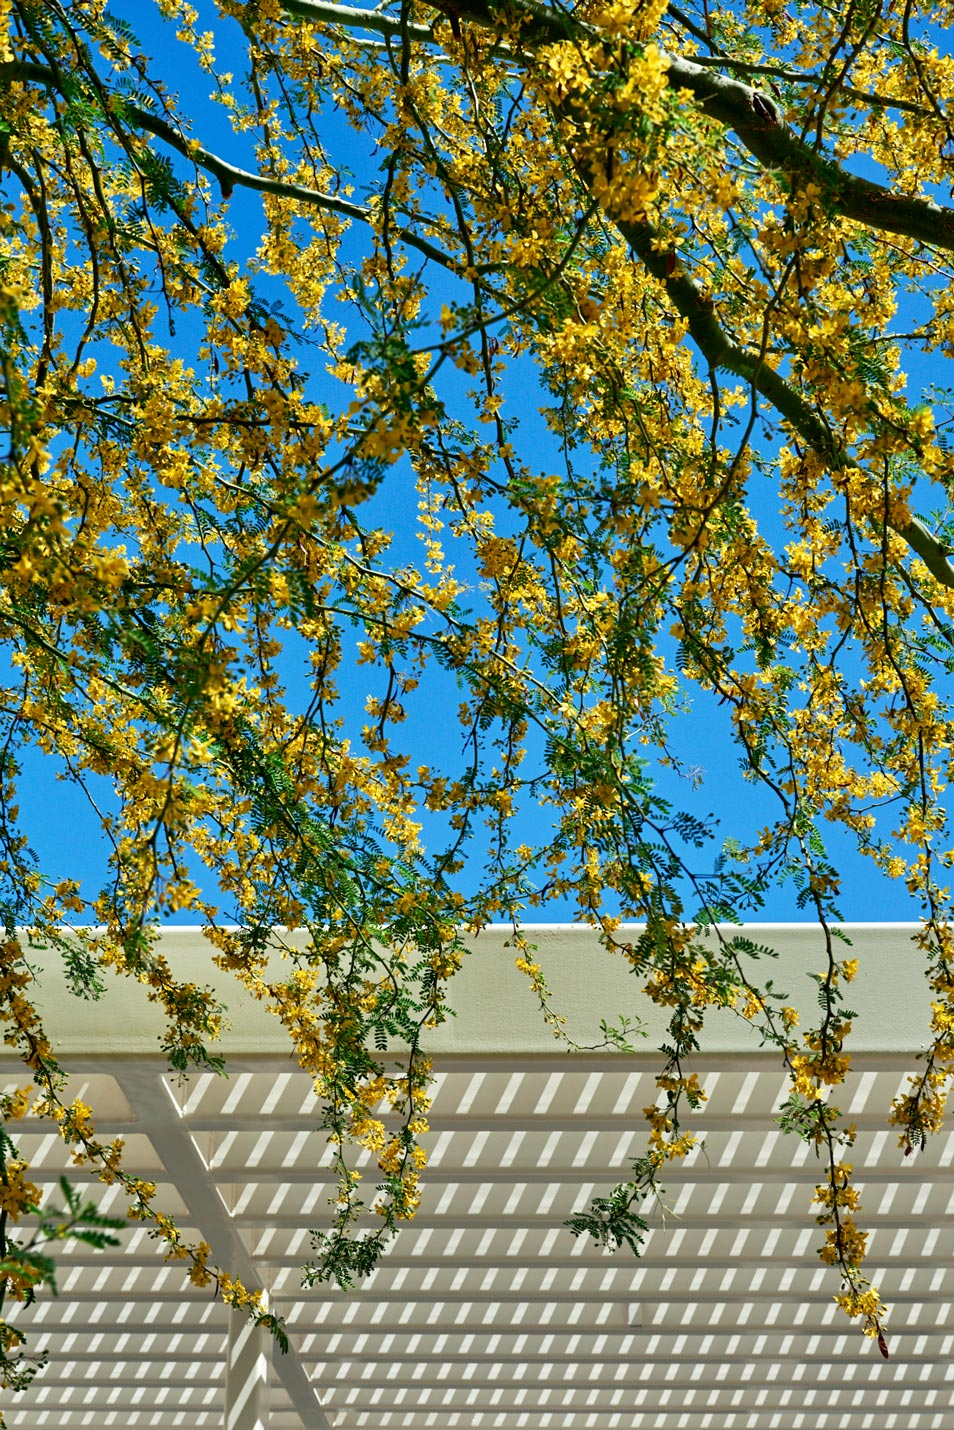 Multiple branches of Palo Brea with yellow blooms along each branch. A white trellis is in the background.